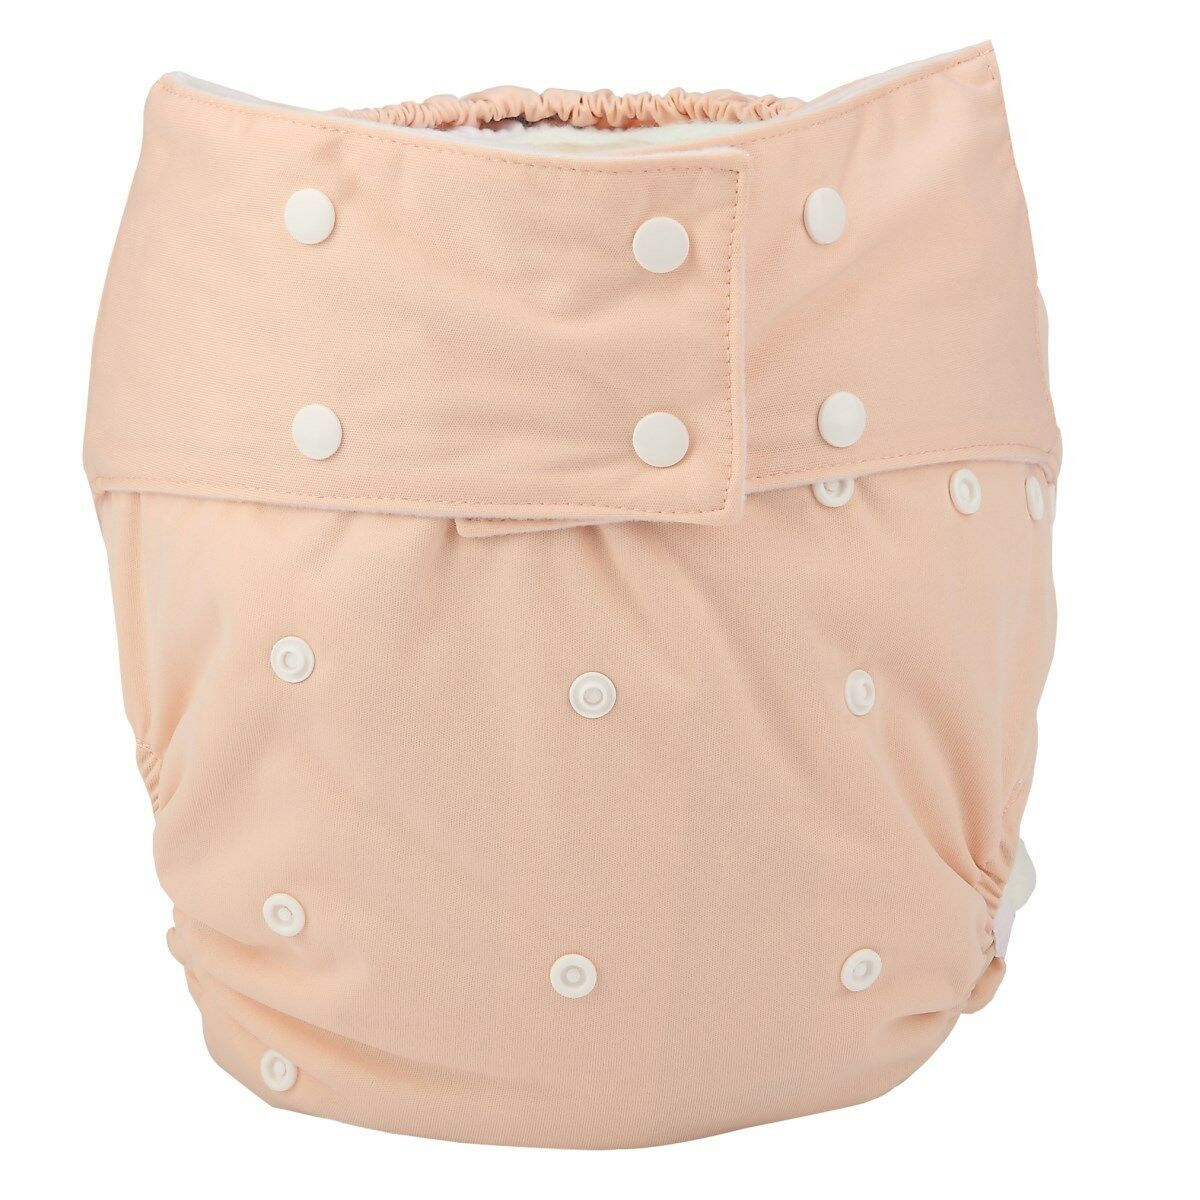 Disabled adult loth nappy